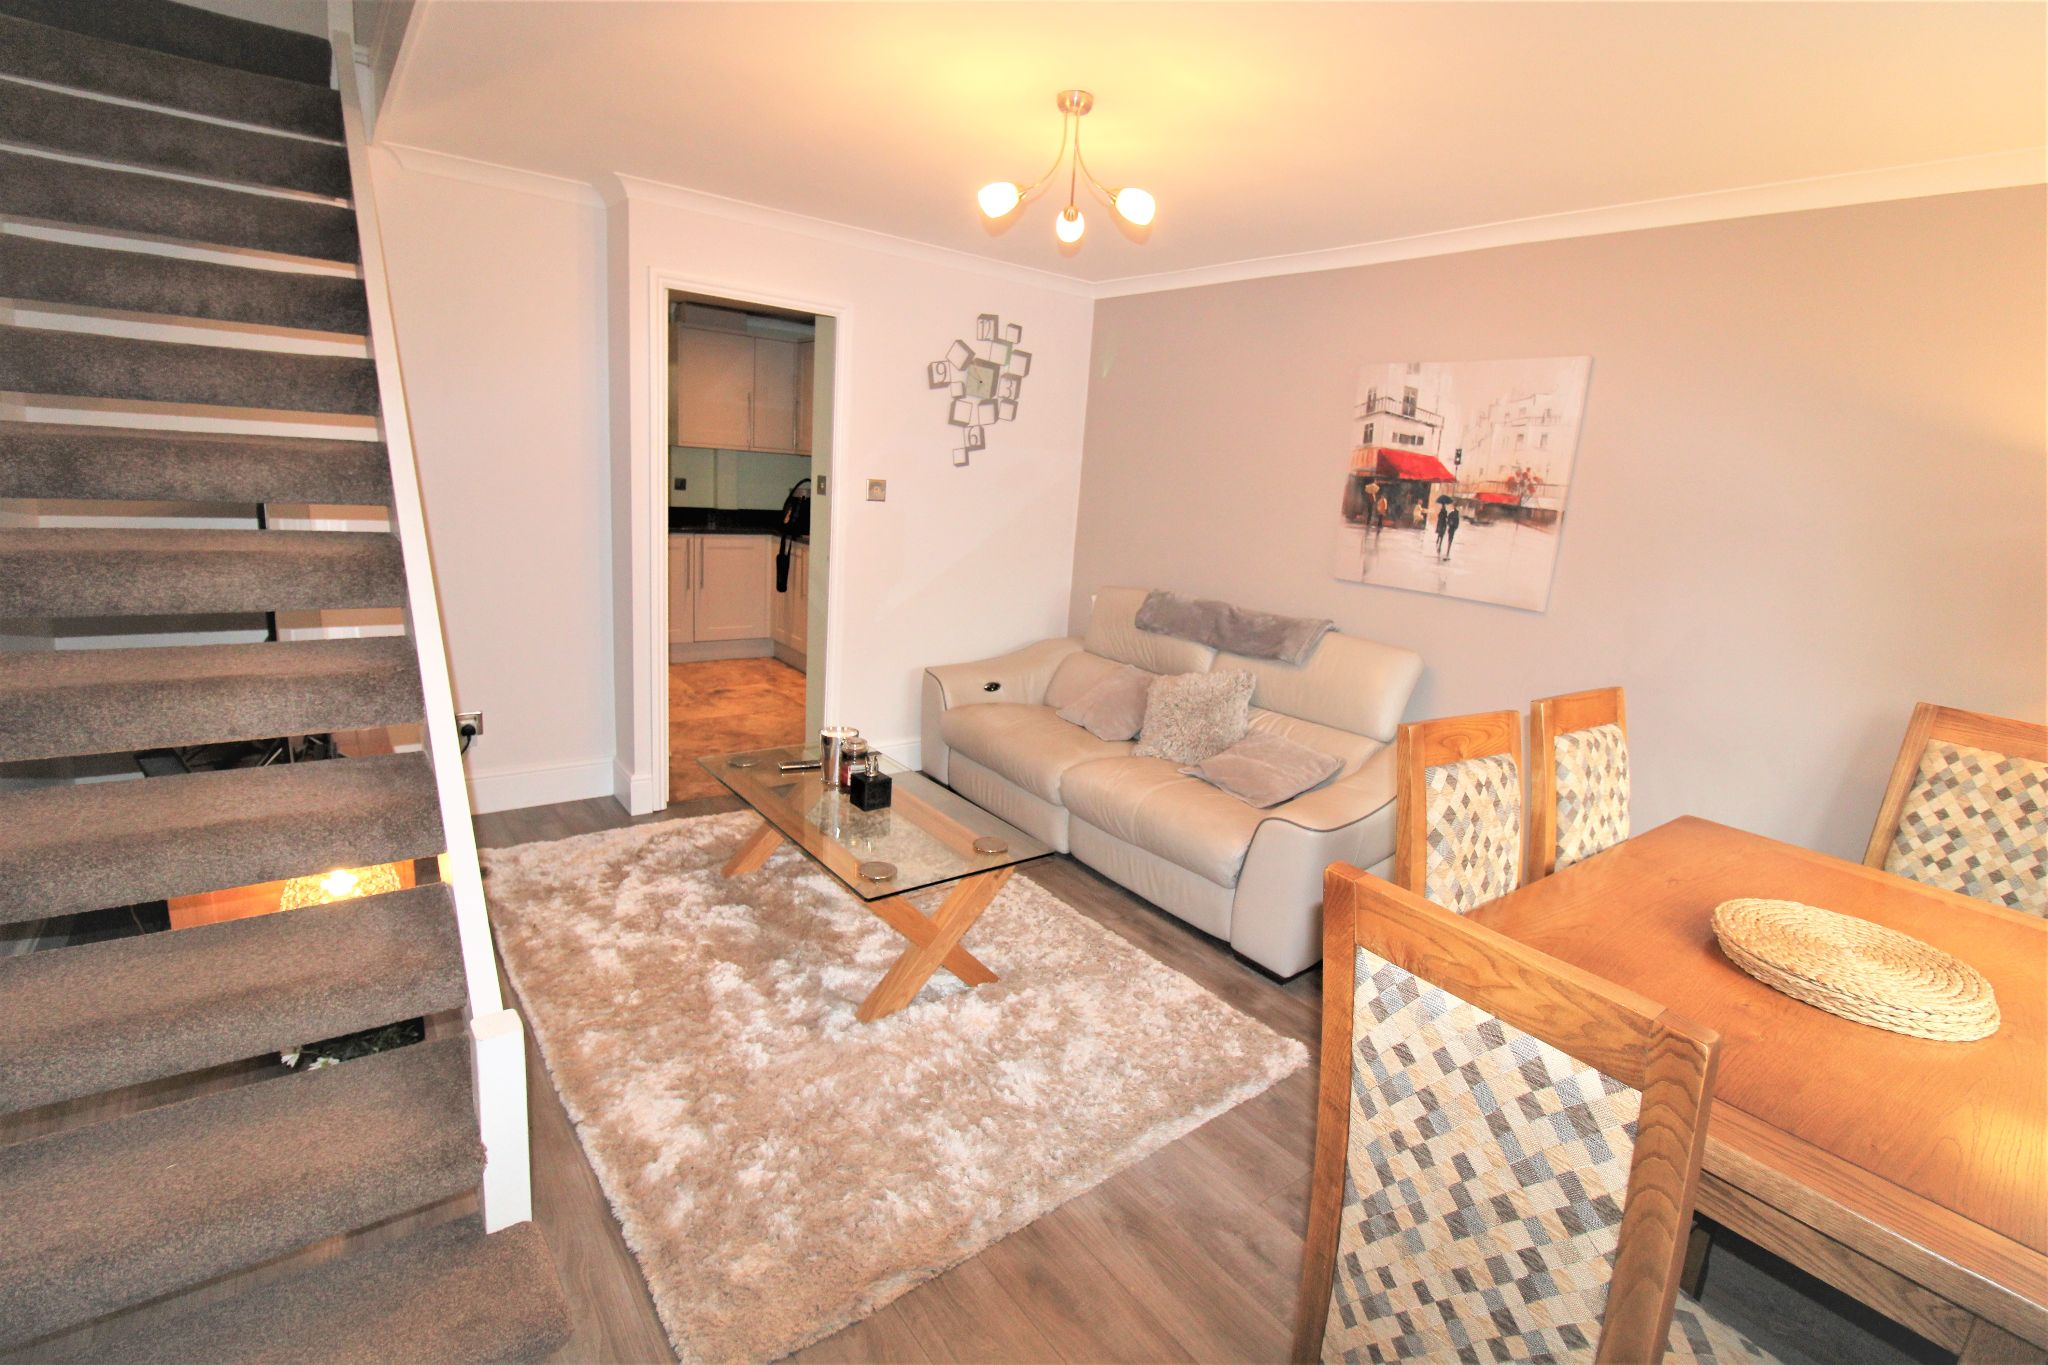 2 Bedroom End Terraced House For Sale - Lounge 2